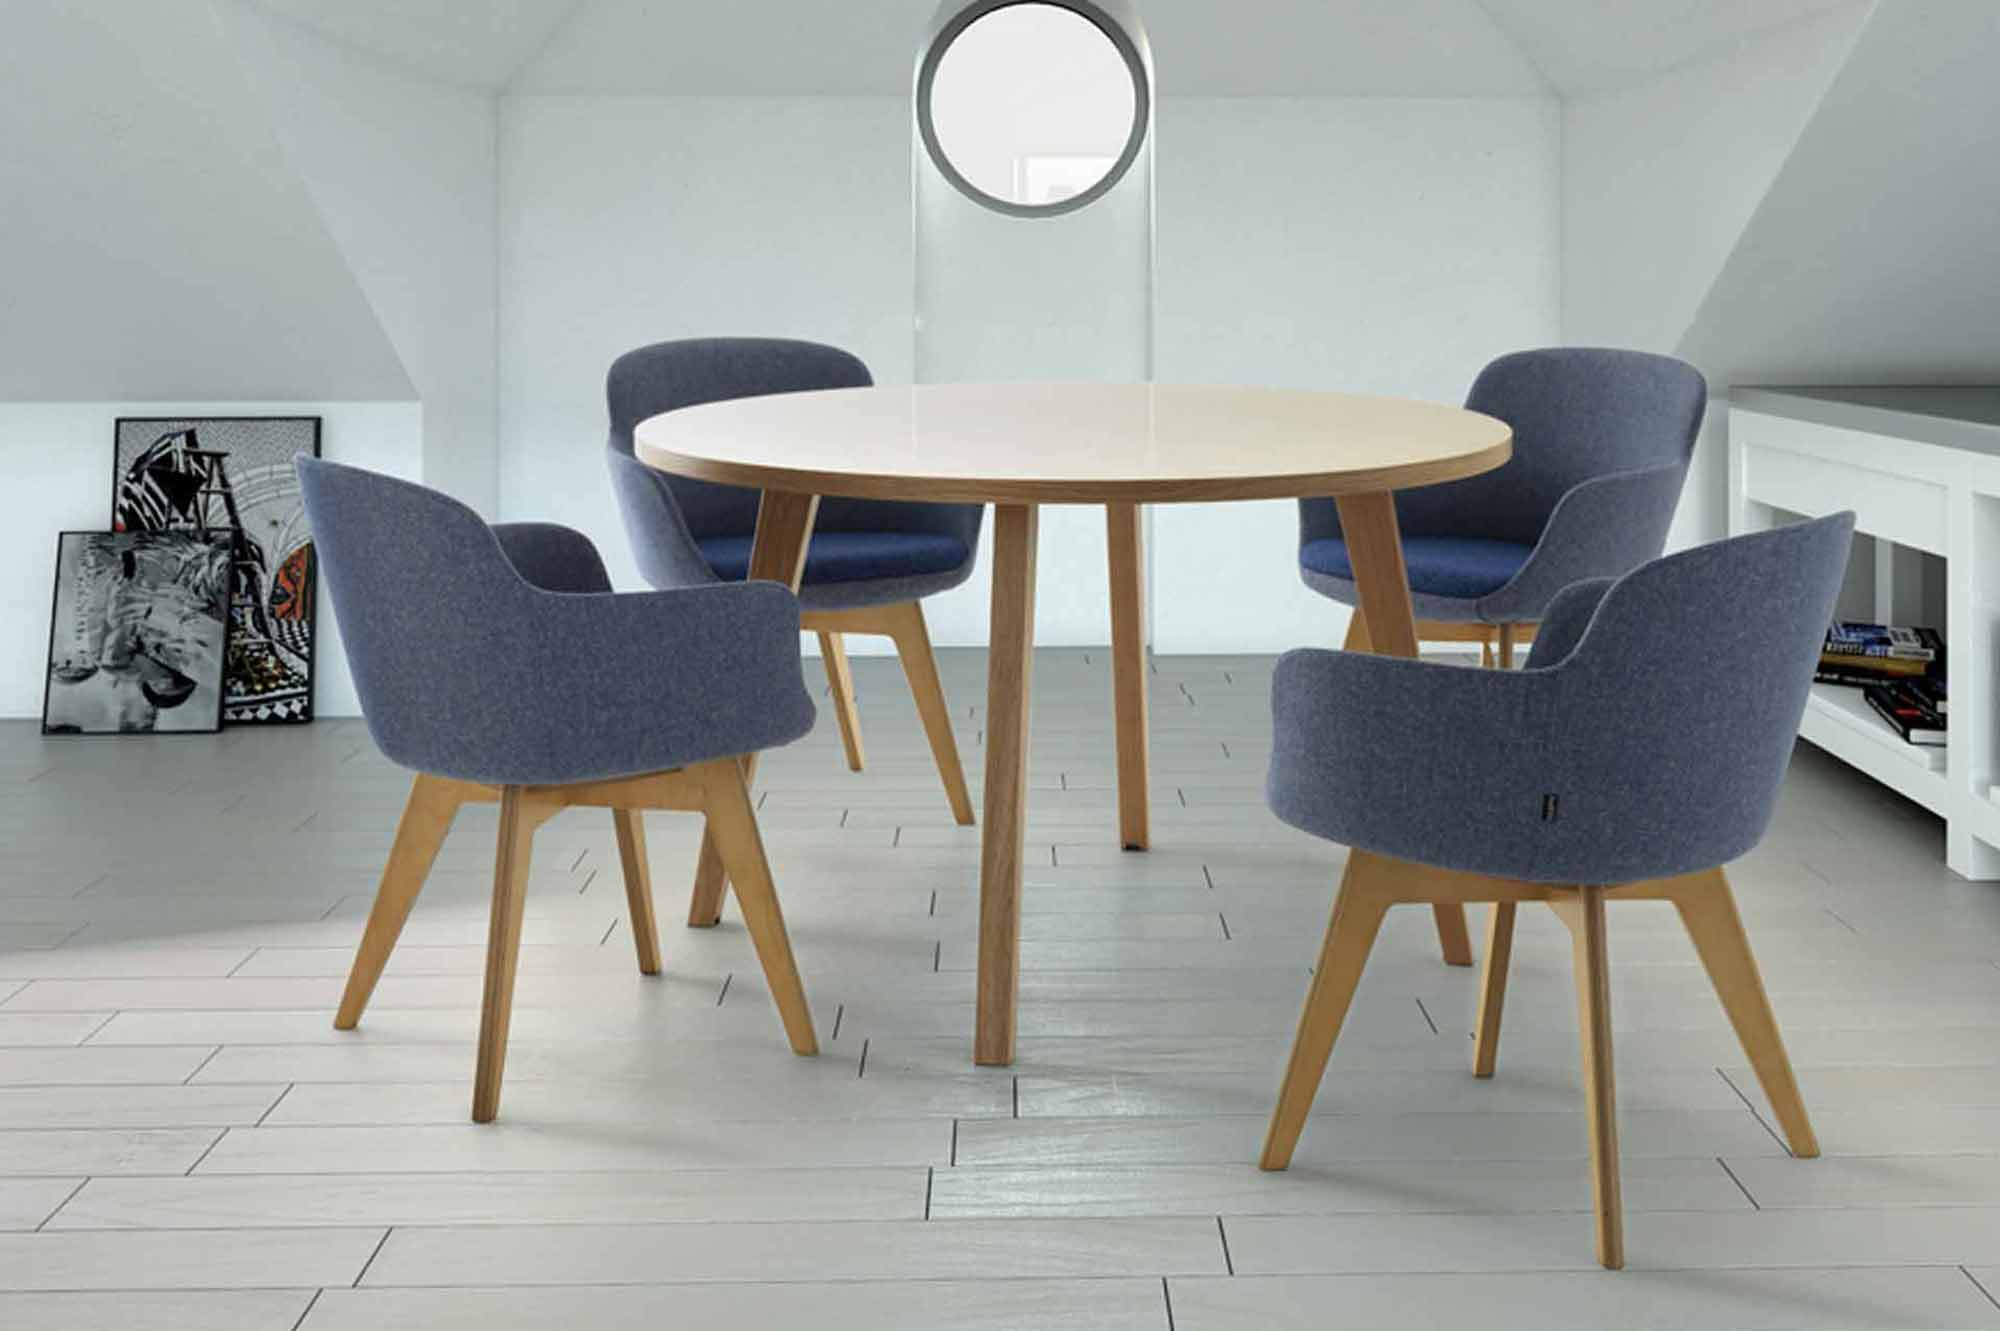 Casual meeting space in office with four chairs and wooden table